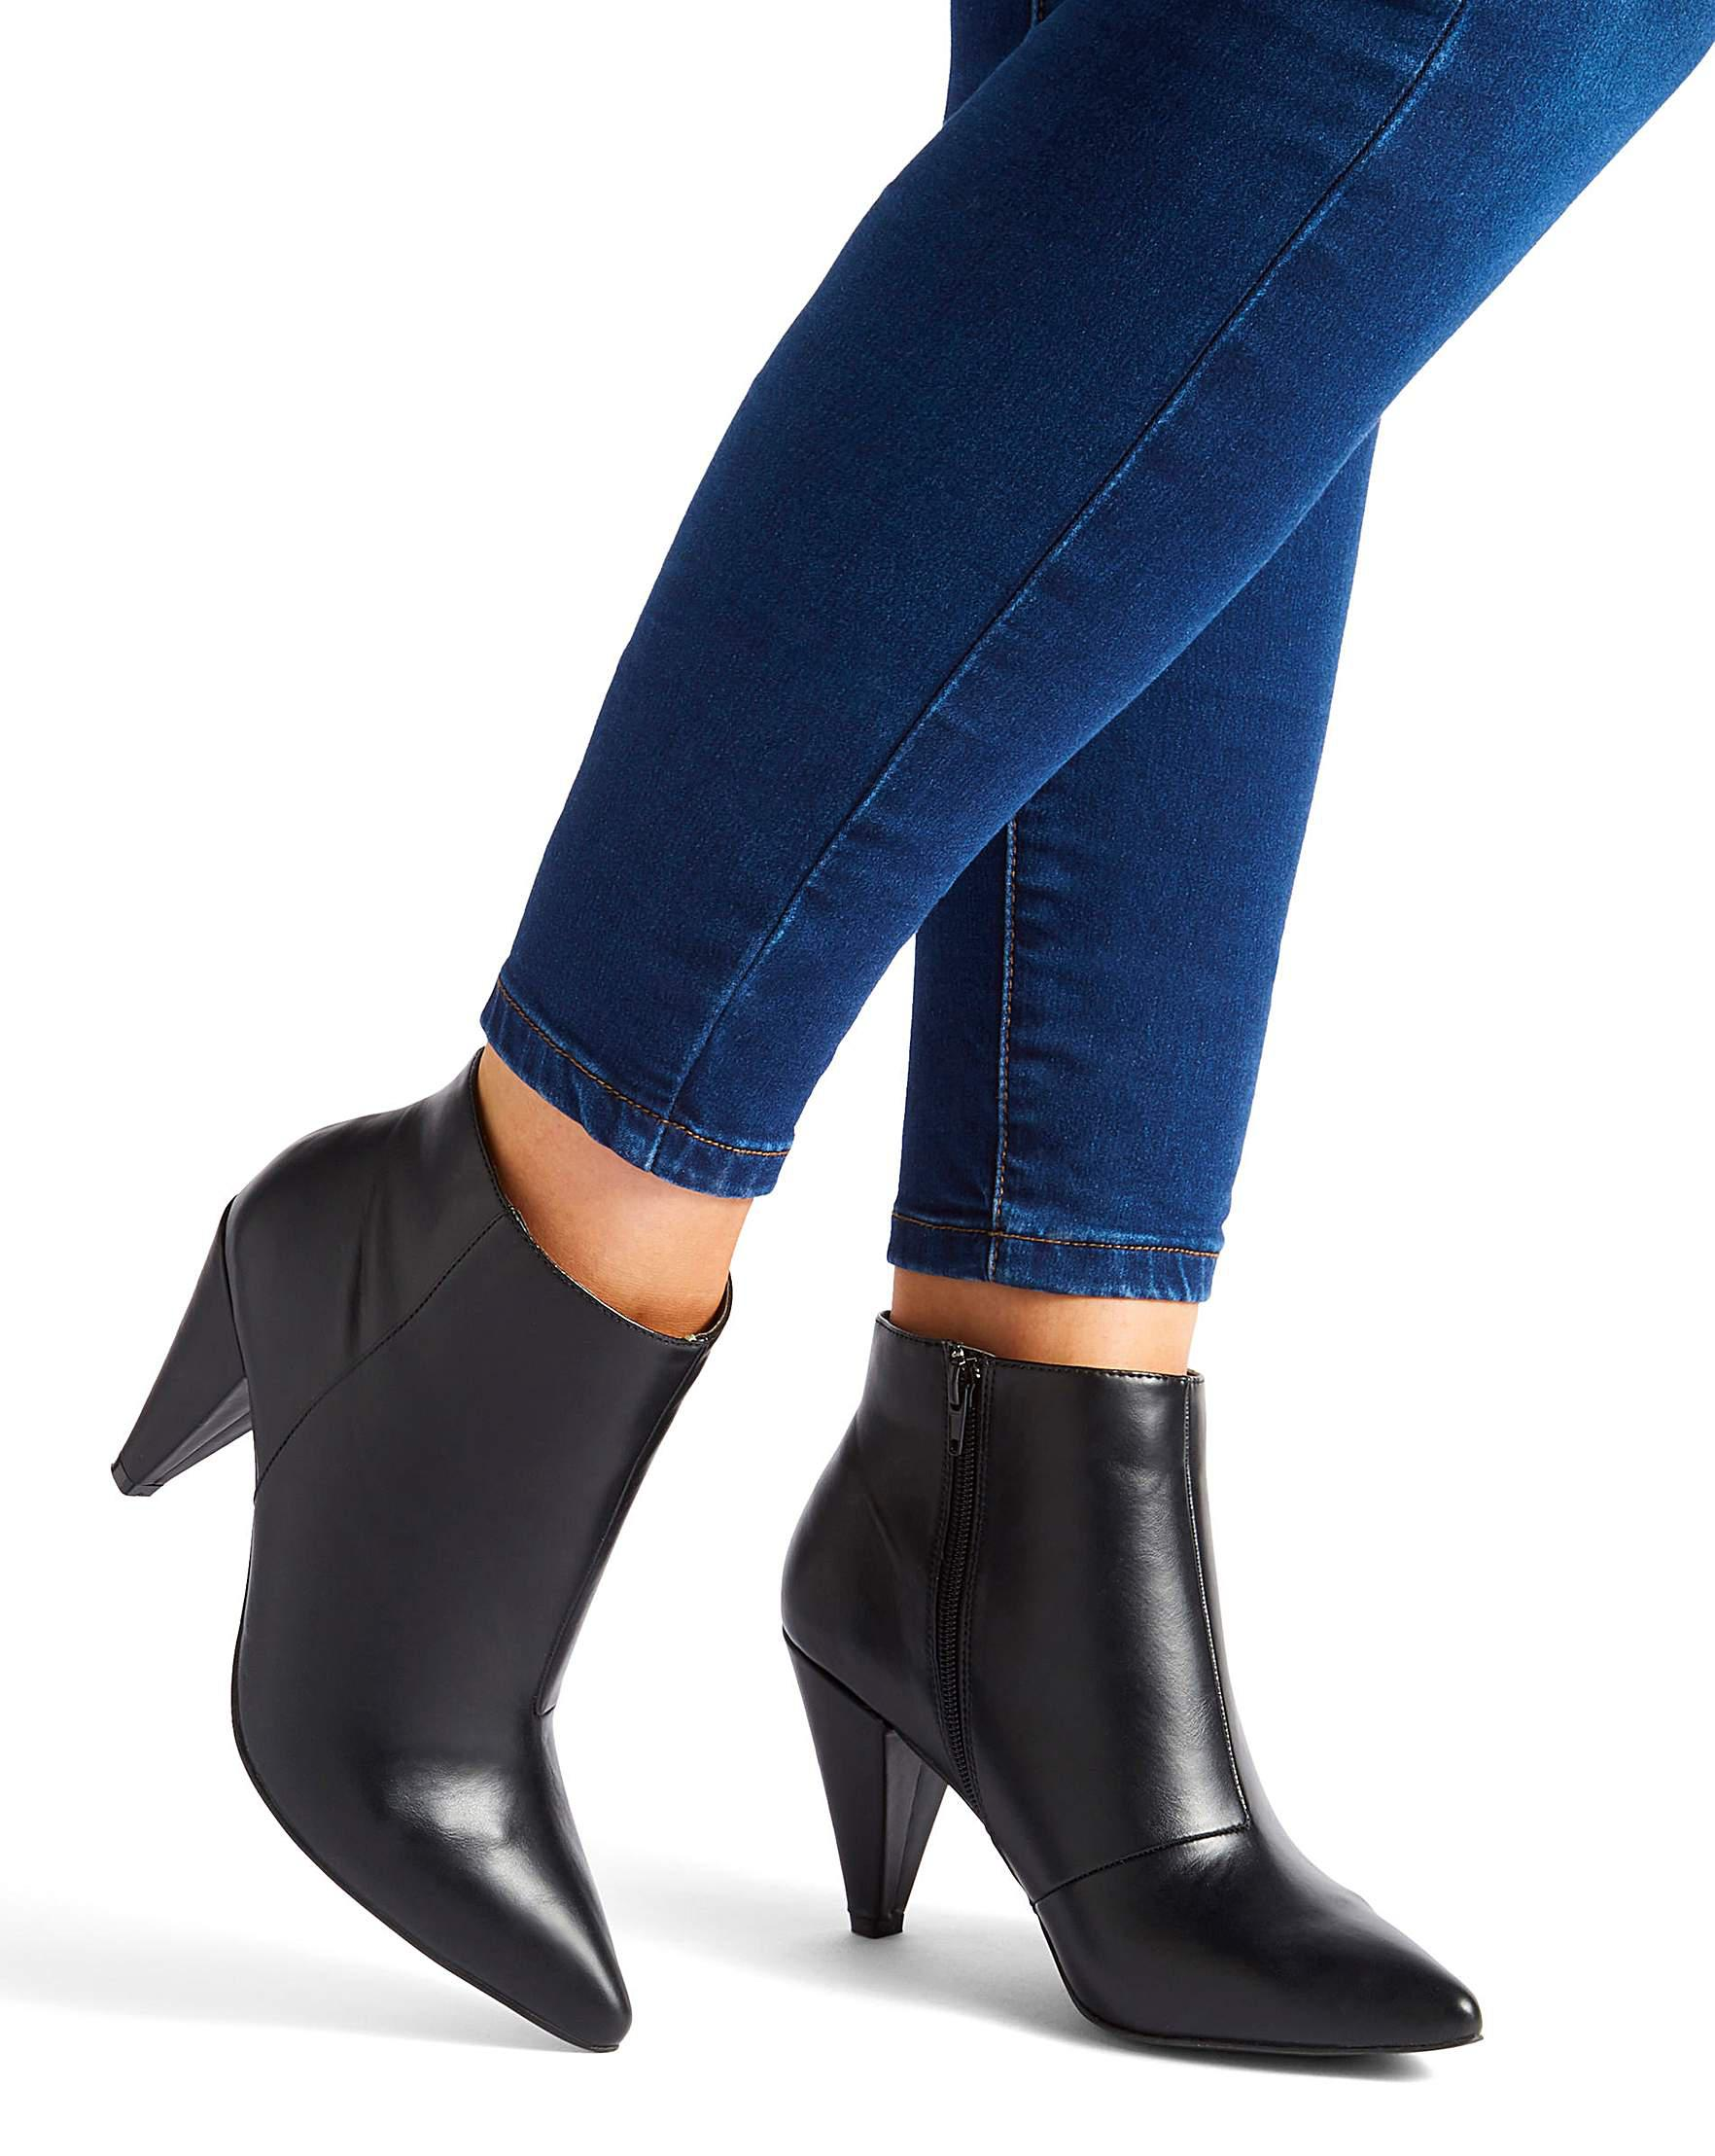 231ab6357f3b Simply Be Lillibet Cone Heel Boots Wide Fit in Black - Lyst